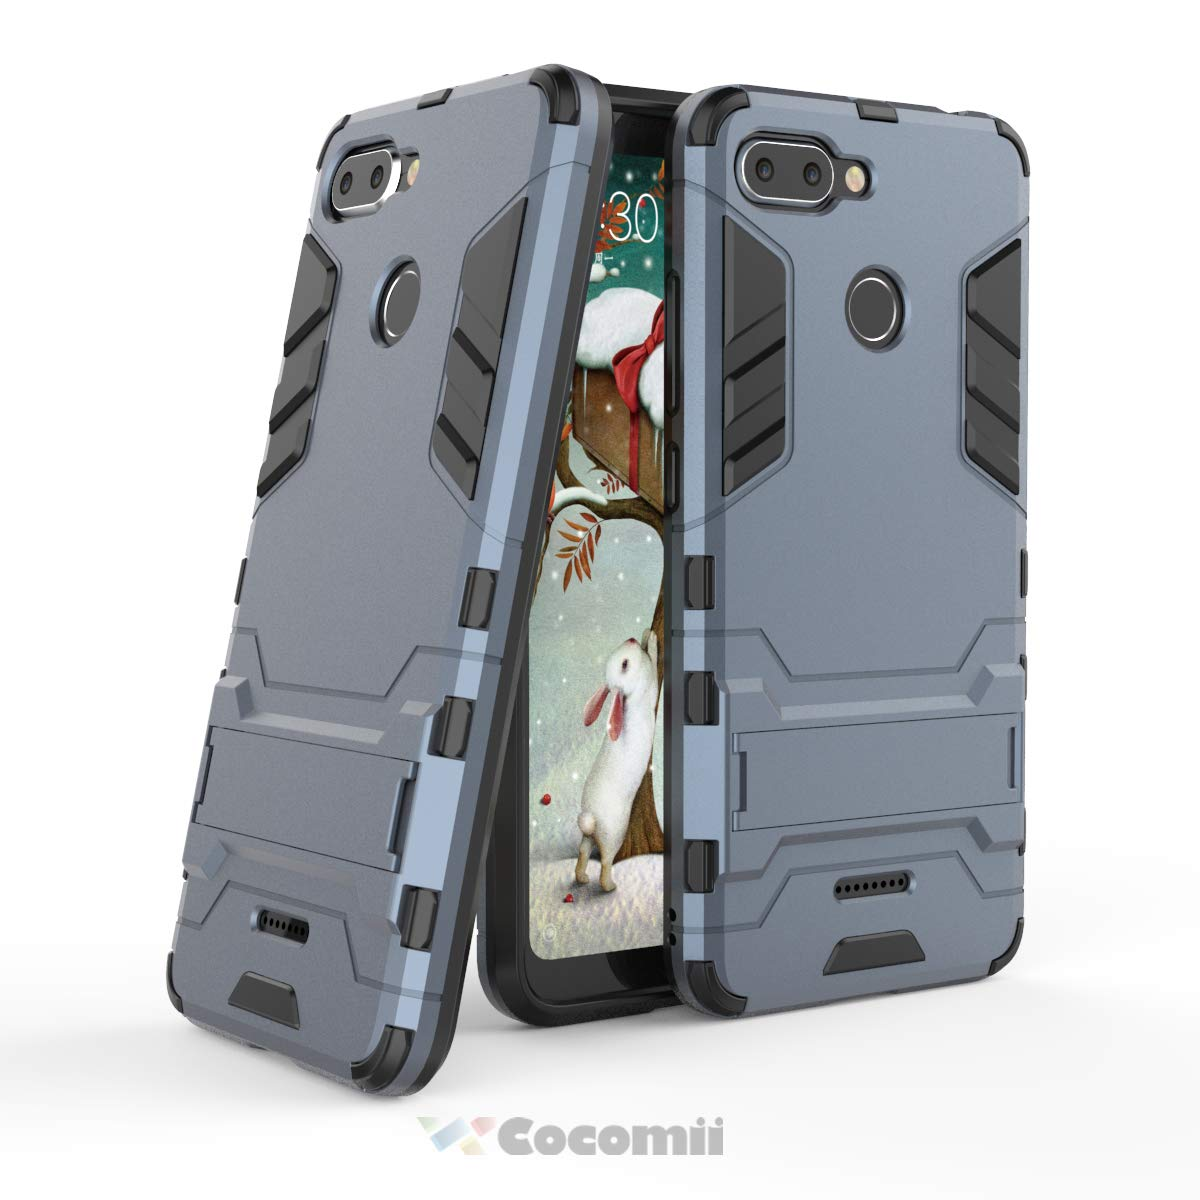 Cocomii Black Panther Armor Xiaomi Redmi 6 Case NEW [Heavy Duty] Premium Tactical Metal Ring Grip Kickstand Shockproof Hard Bumper Shell [Works With Magnetic Car Mount] Full Body Dual Layer Rugged Cover for Xiaomi Redmi 6 (B.Jet Black)